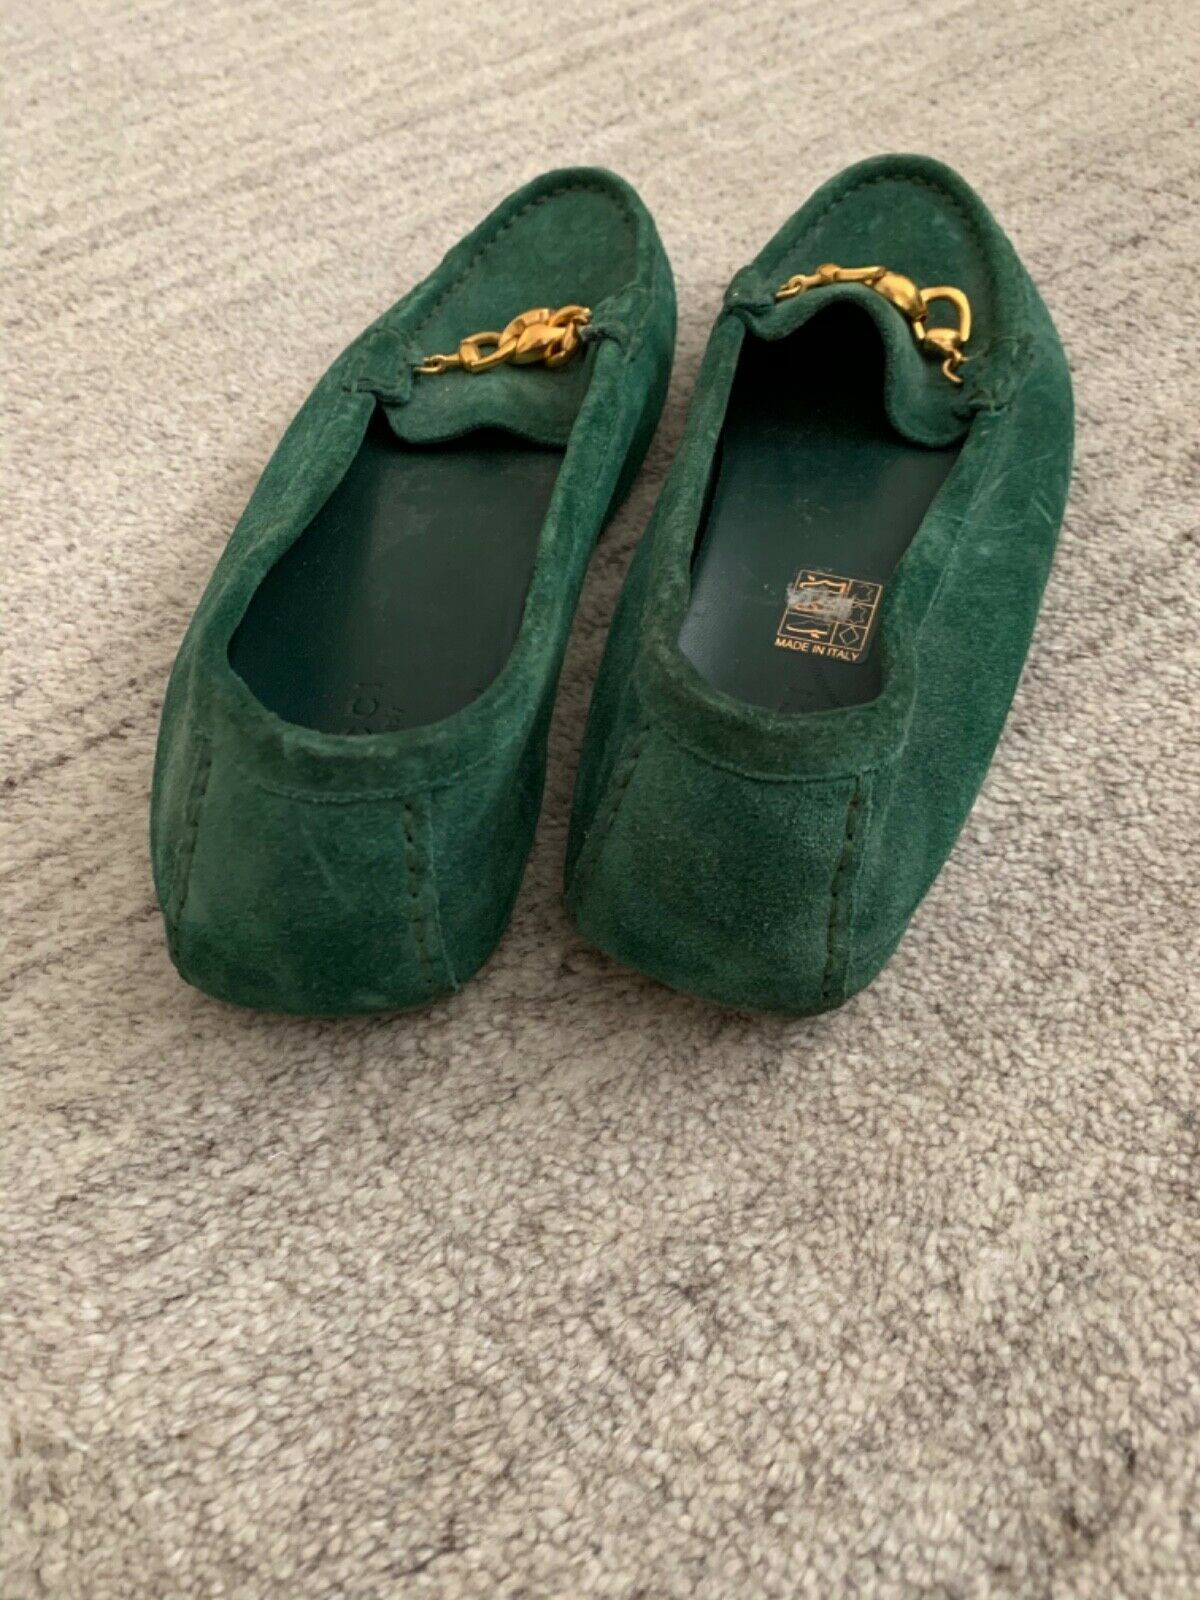 Gucci Suede Green Loafers - image 2